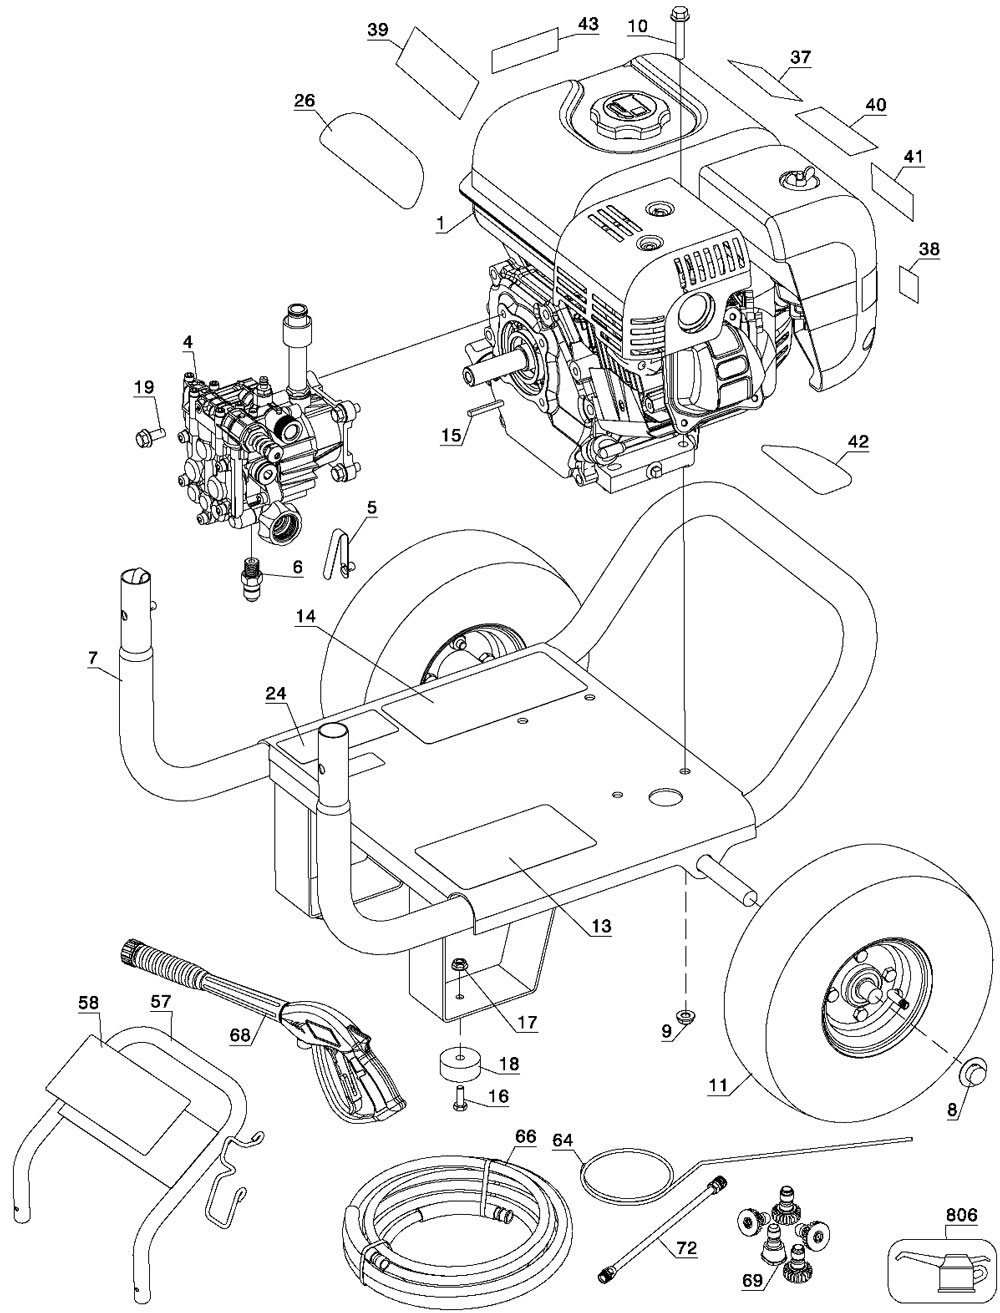 Washer Parts: July 2016